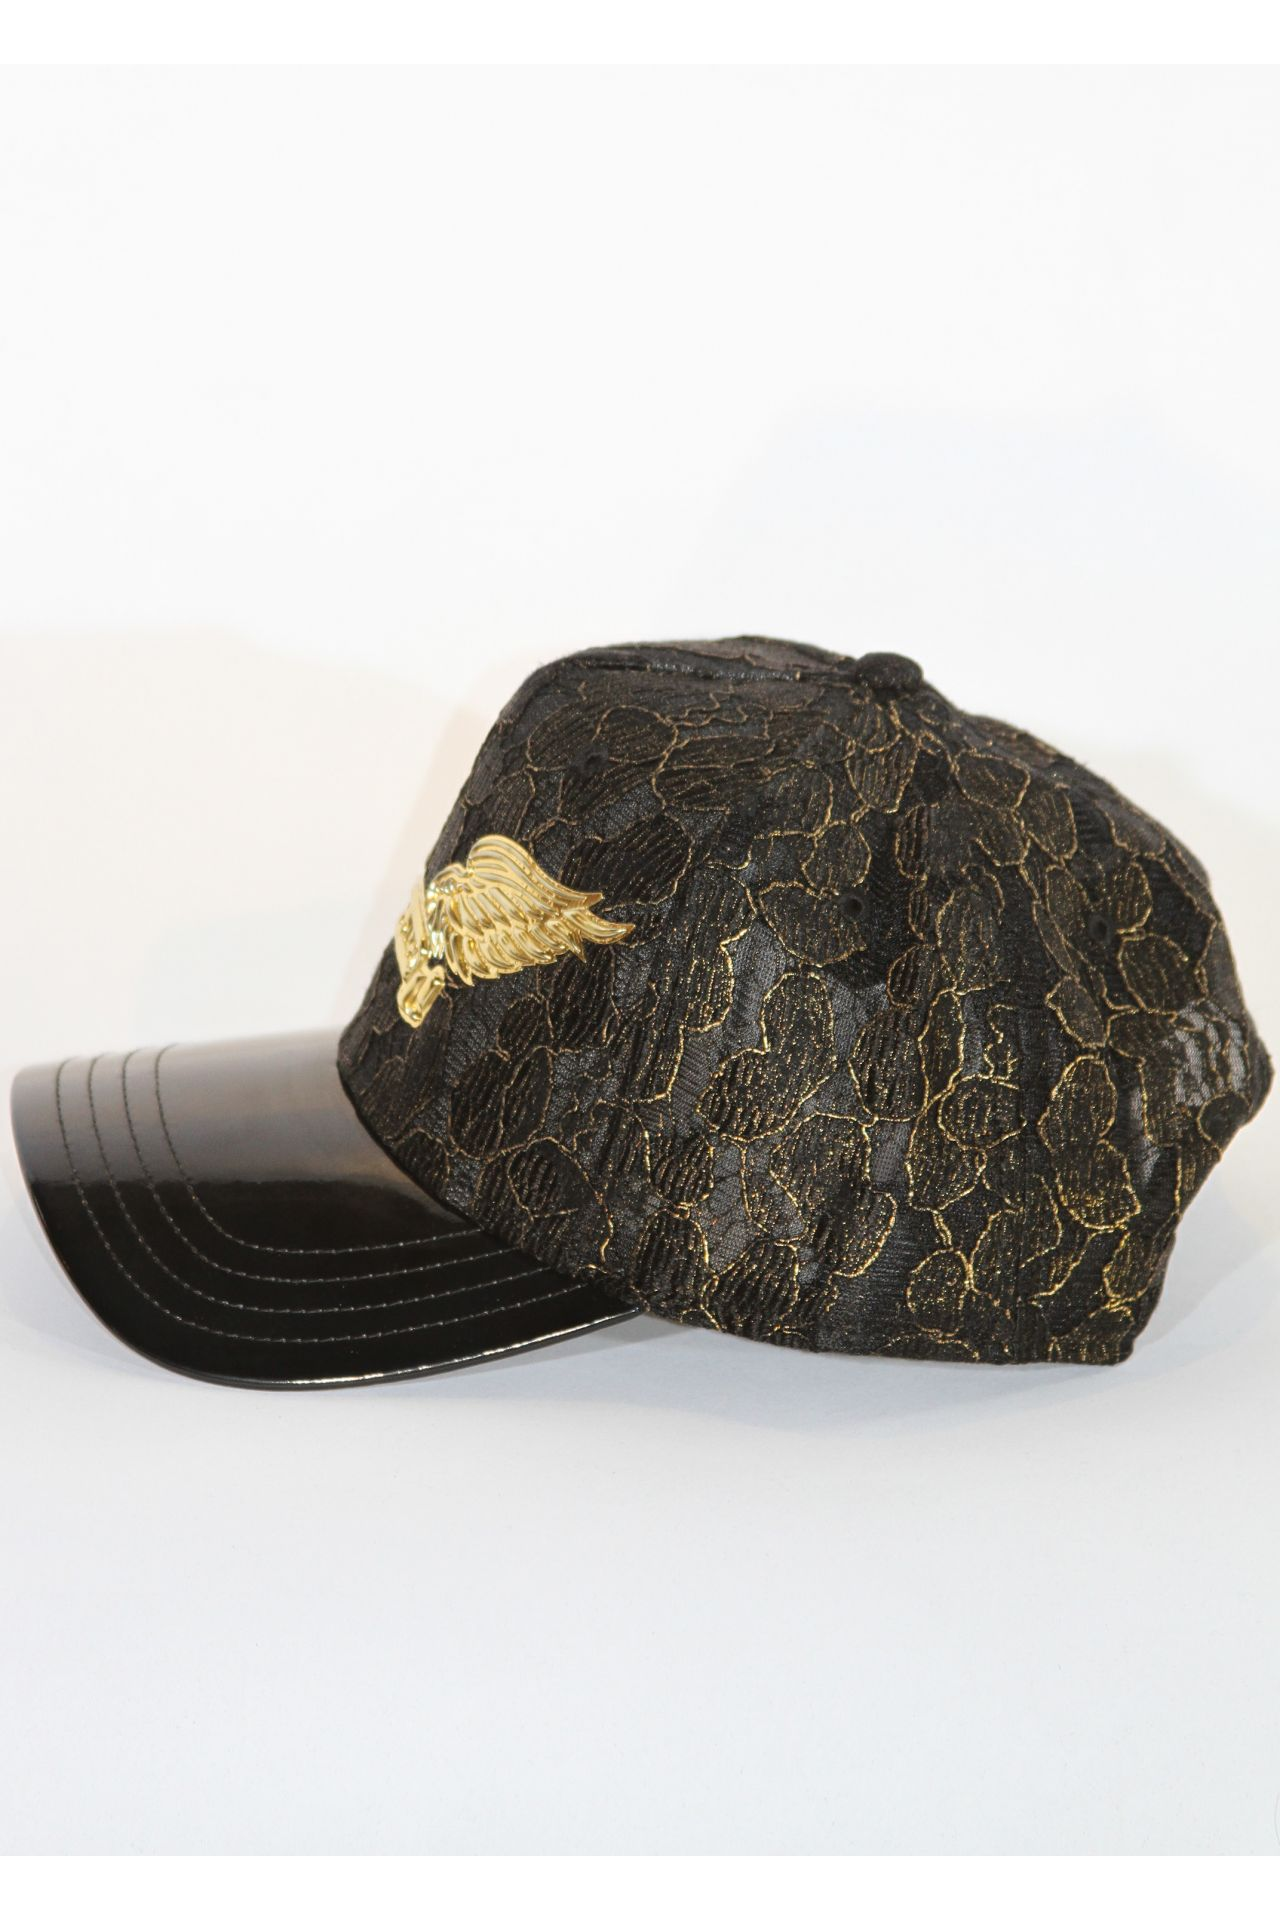 BLACK & GOLD LACED CAP WITH GOLD WINGS